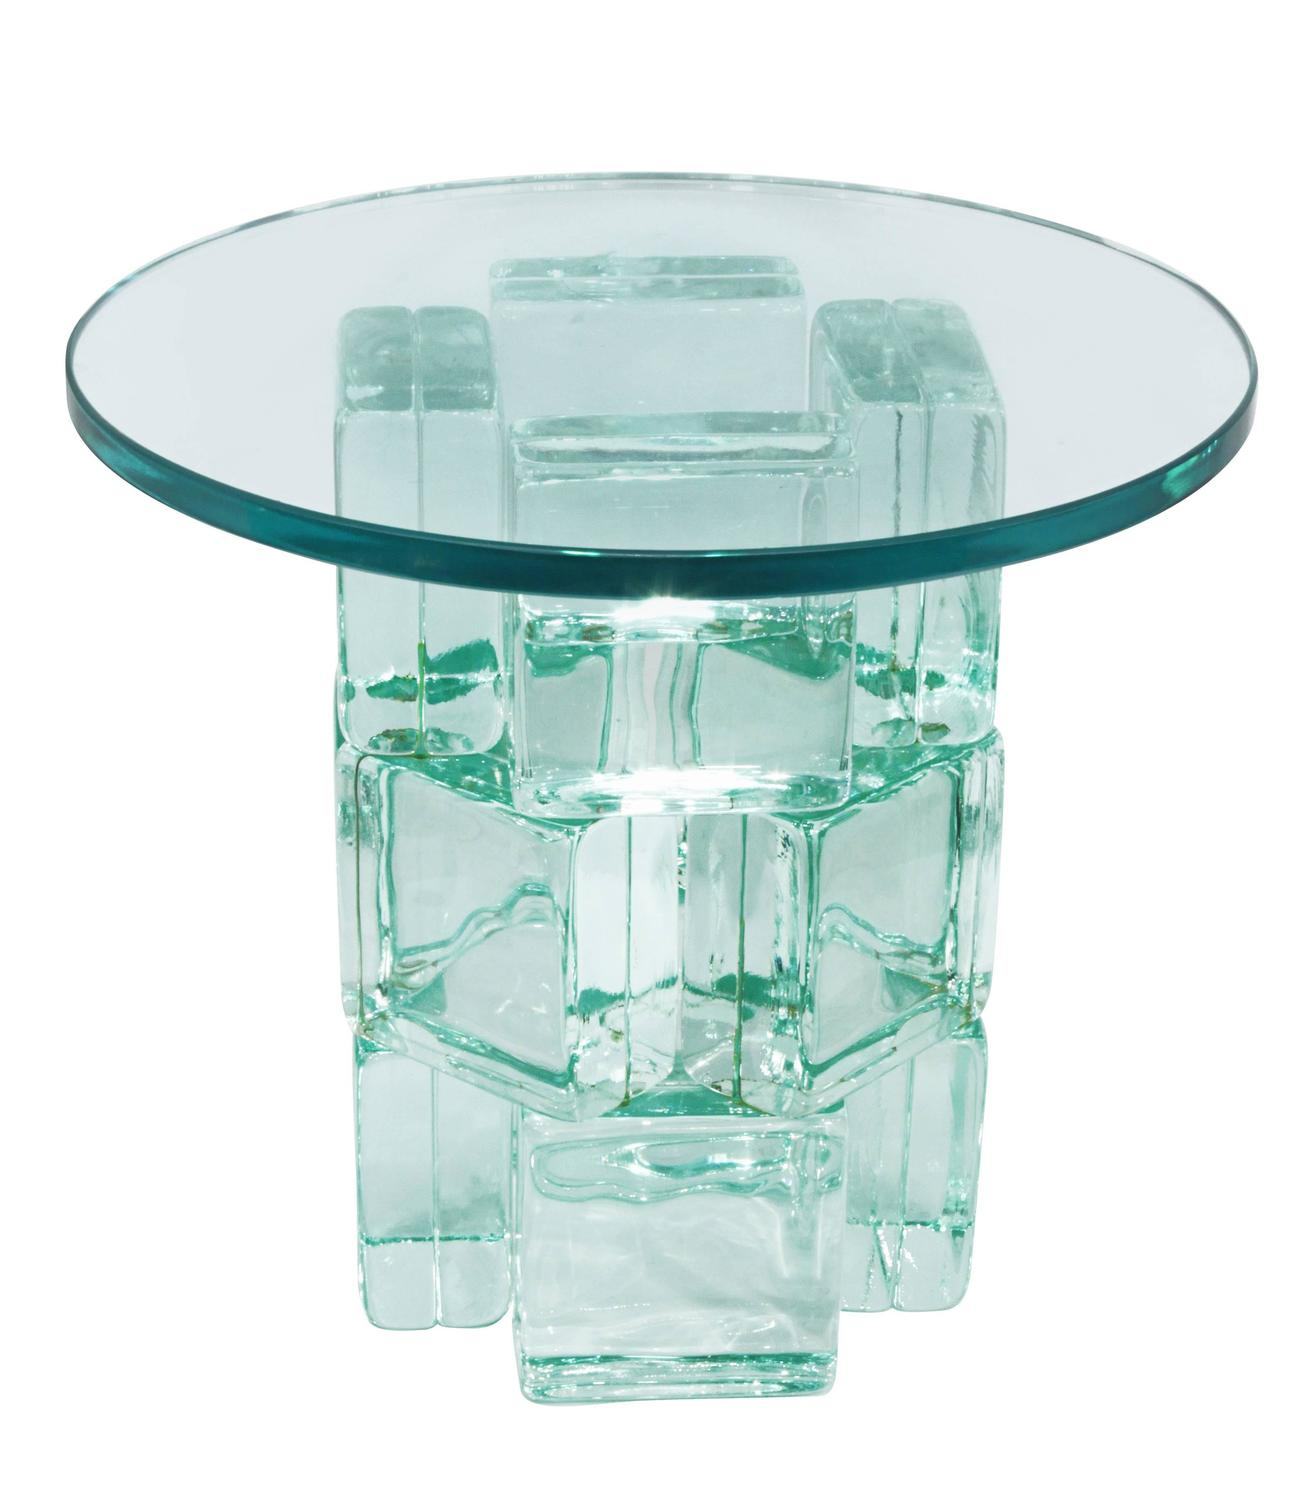 Chic Occasional Tables With Solid Glass Blocks By Imperial Imagineering For Sale At 1stdibs